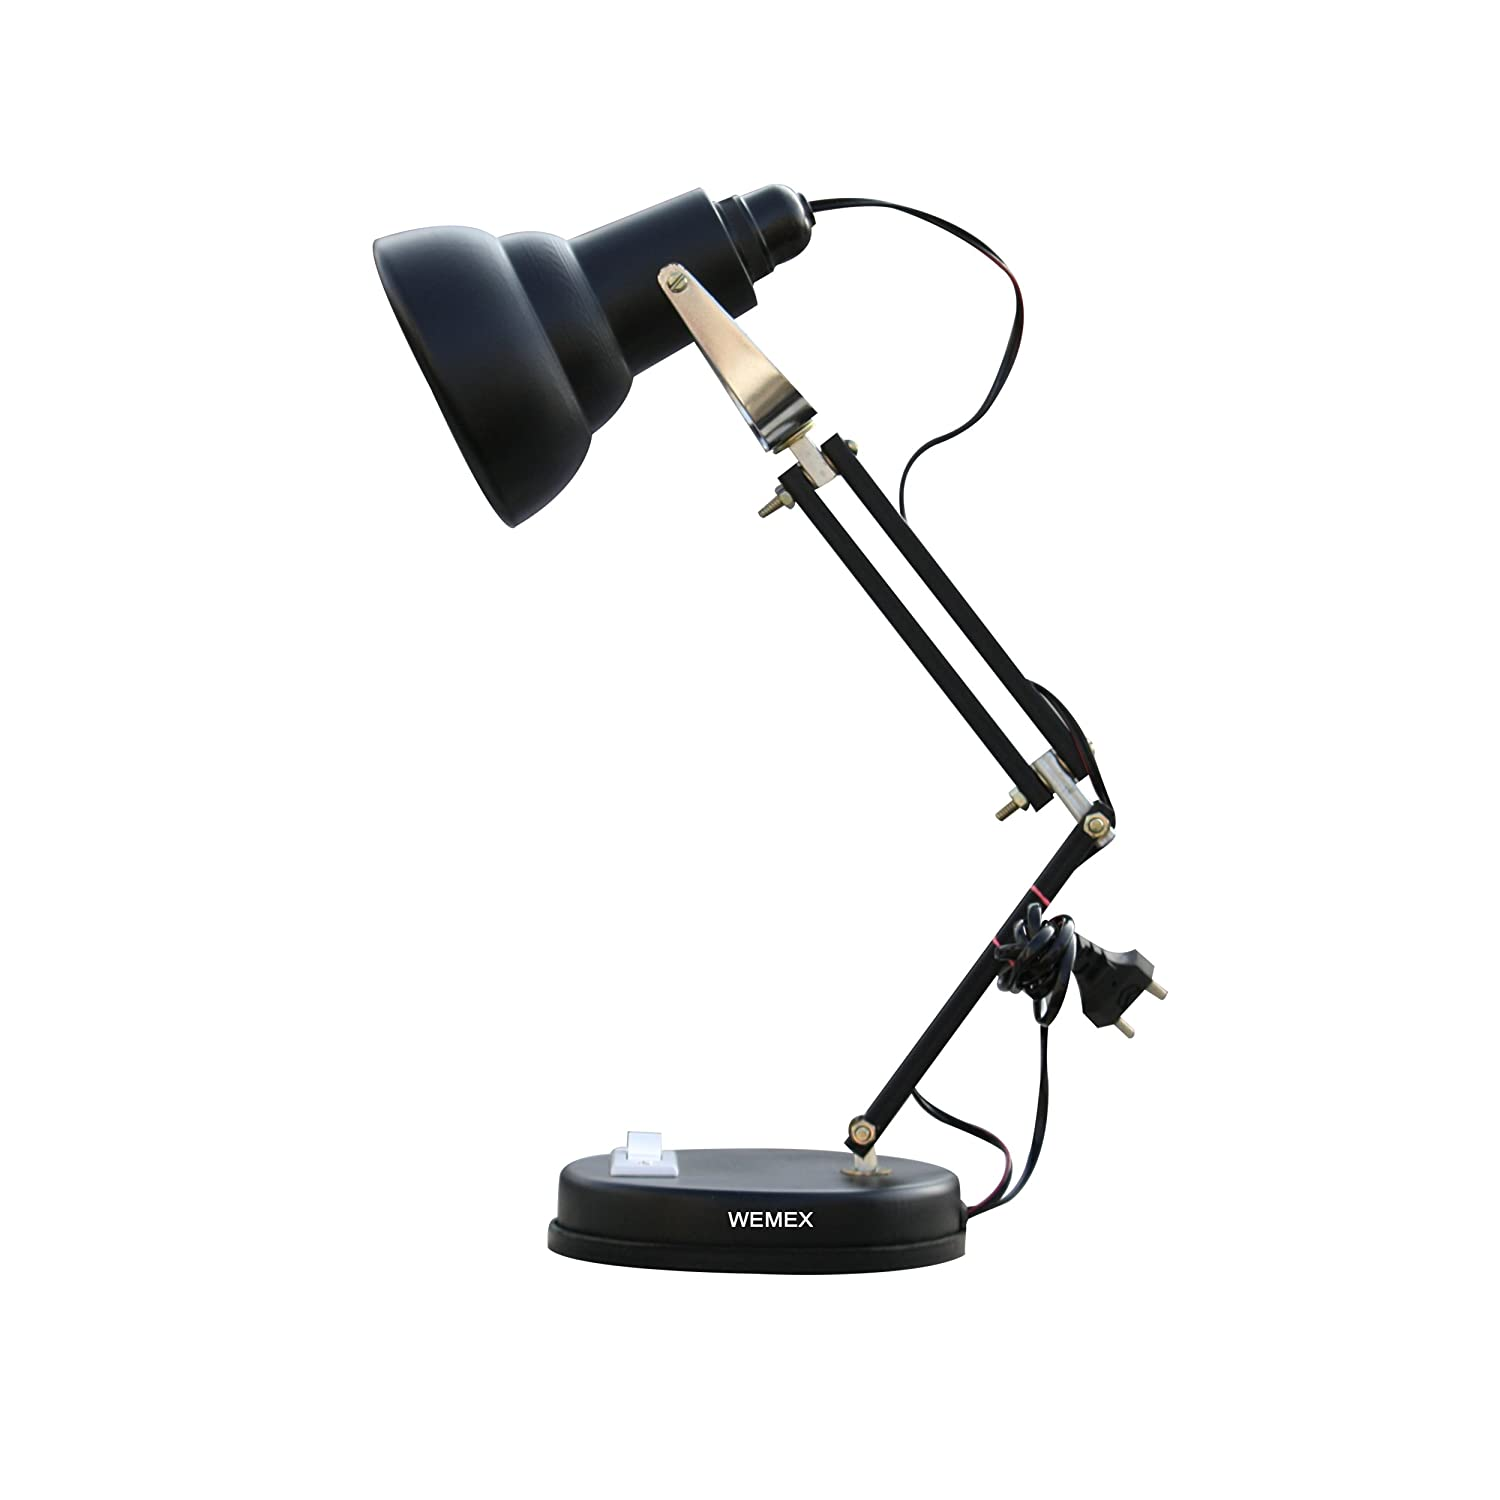 Buy wemex billie jean reading study table lamp matte black online buy wemex billie jean reading study table lamp matte black online at low prices in india amazon aloadofball Choice Image